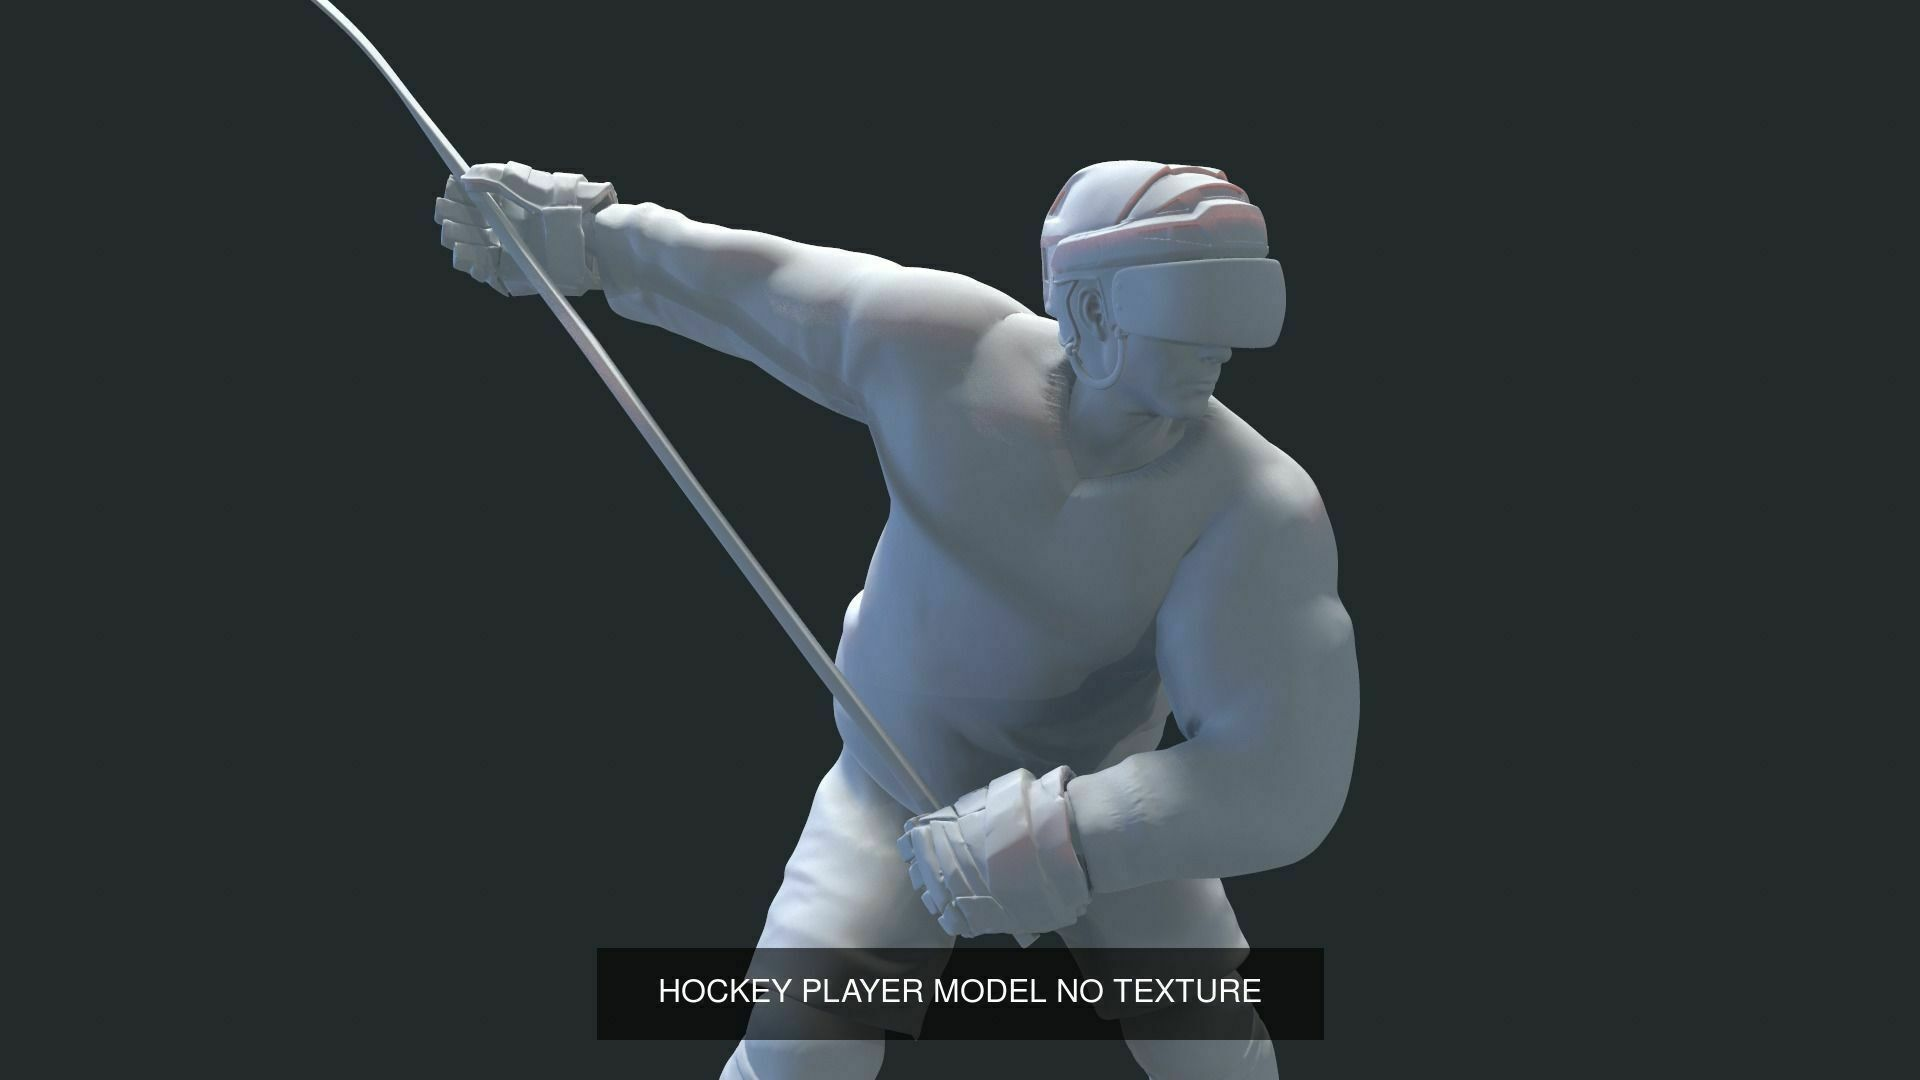 ultimate-hockey-poses-pack-model-no-texture-3d-model-max-obj-fbx-stl-tbscene (12).jpg Download OBJ file ULTIMATE HOCKEY POSES PACK MODEL NO TEXTURE 3D Model Collection • 3D printing template, NightCreativity